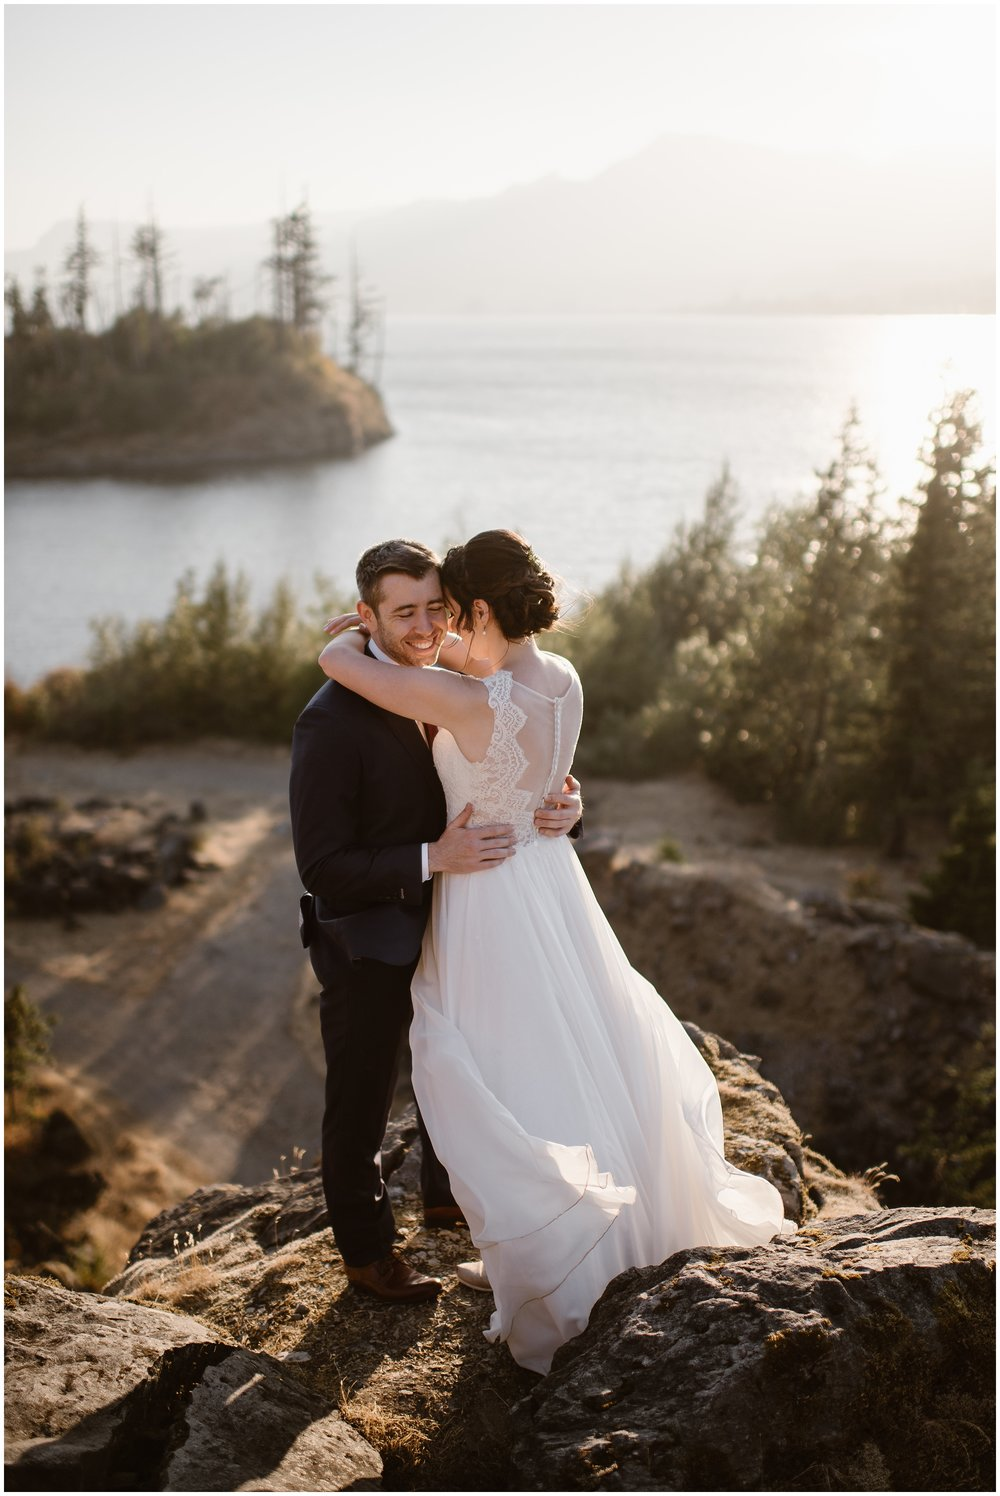 In these elopement pictures captured by Oregon elopement photographer Adventure Instead, Lauryn and David hold each other close and kiss as golden light streams in on them. In the background, PNW islands dot the Columbia River.